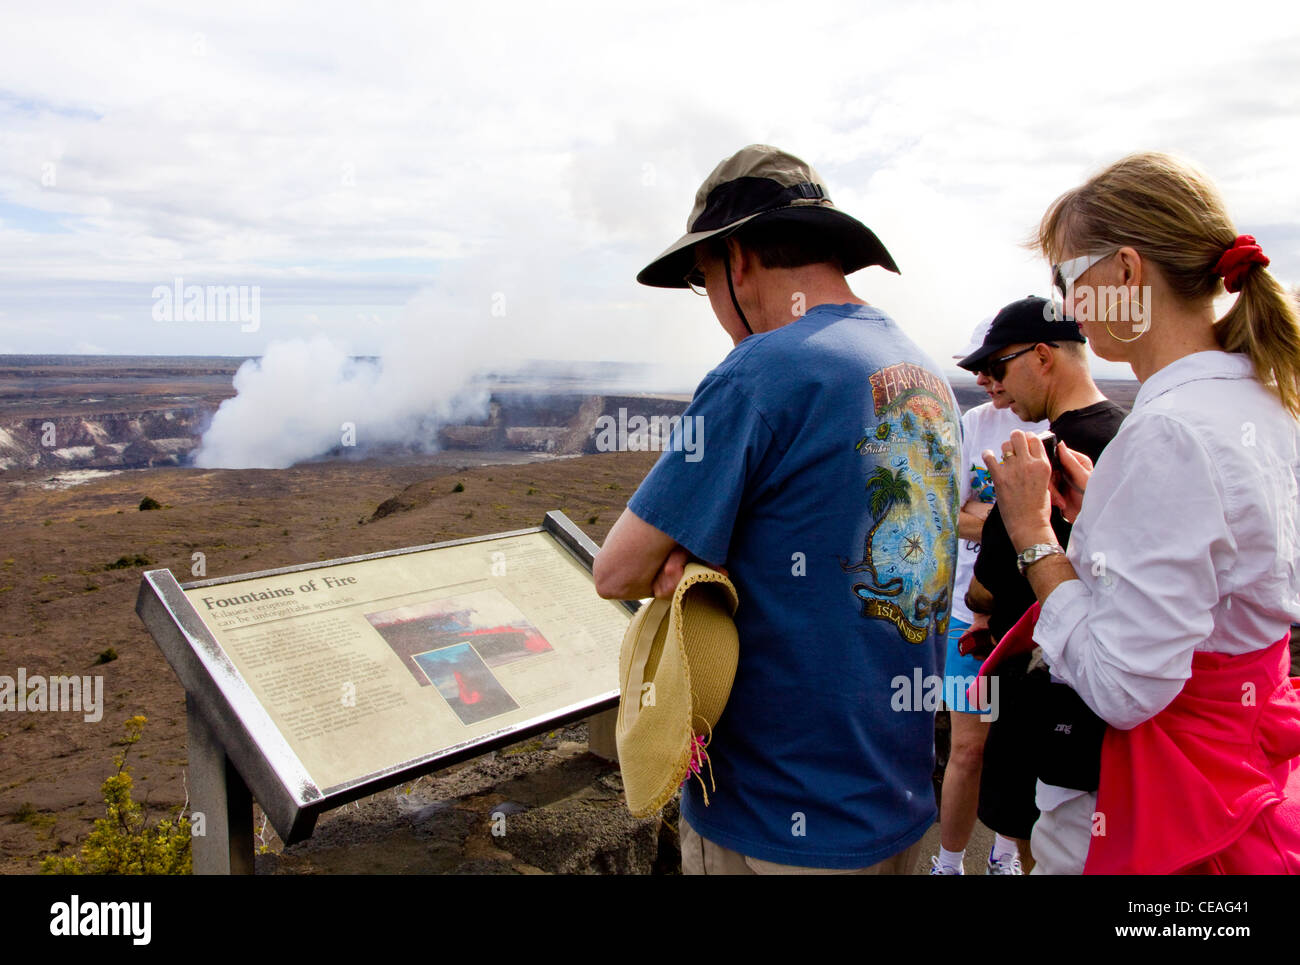 Volcanic gases from Halema'uma'u Crater, Kilauea Overlook, the most active point within Kilauea's summit - Stock Image